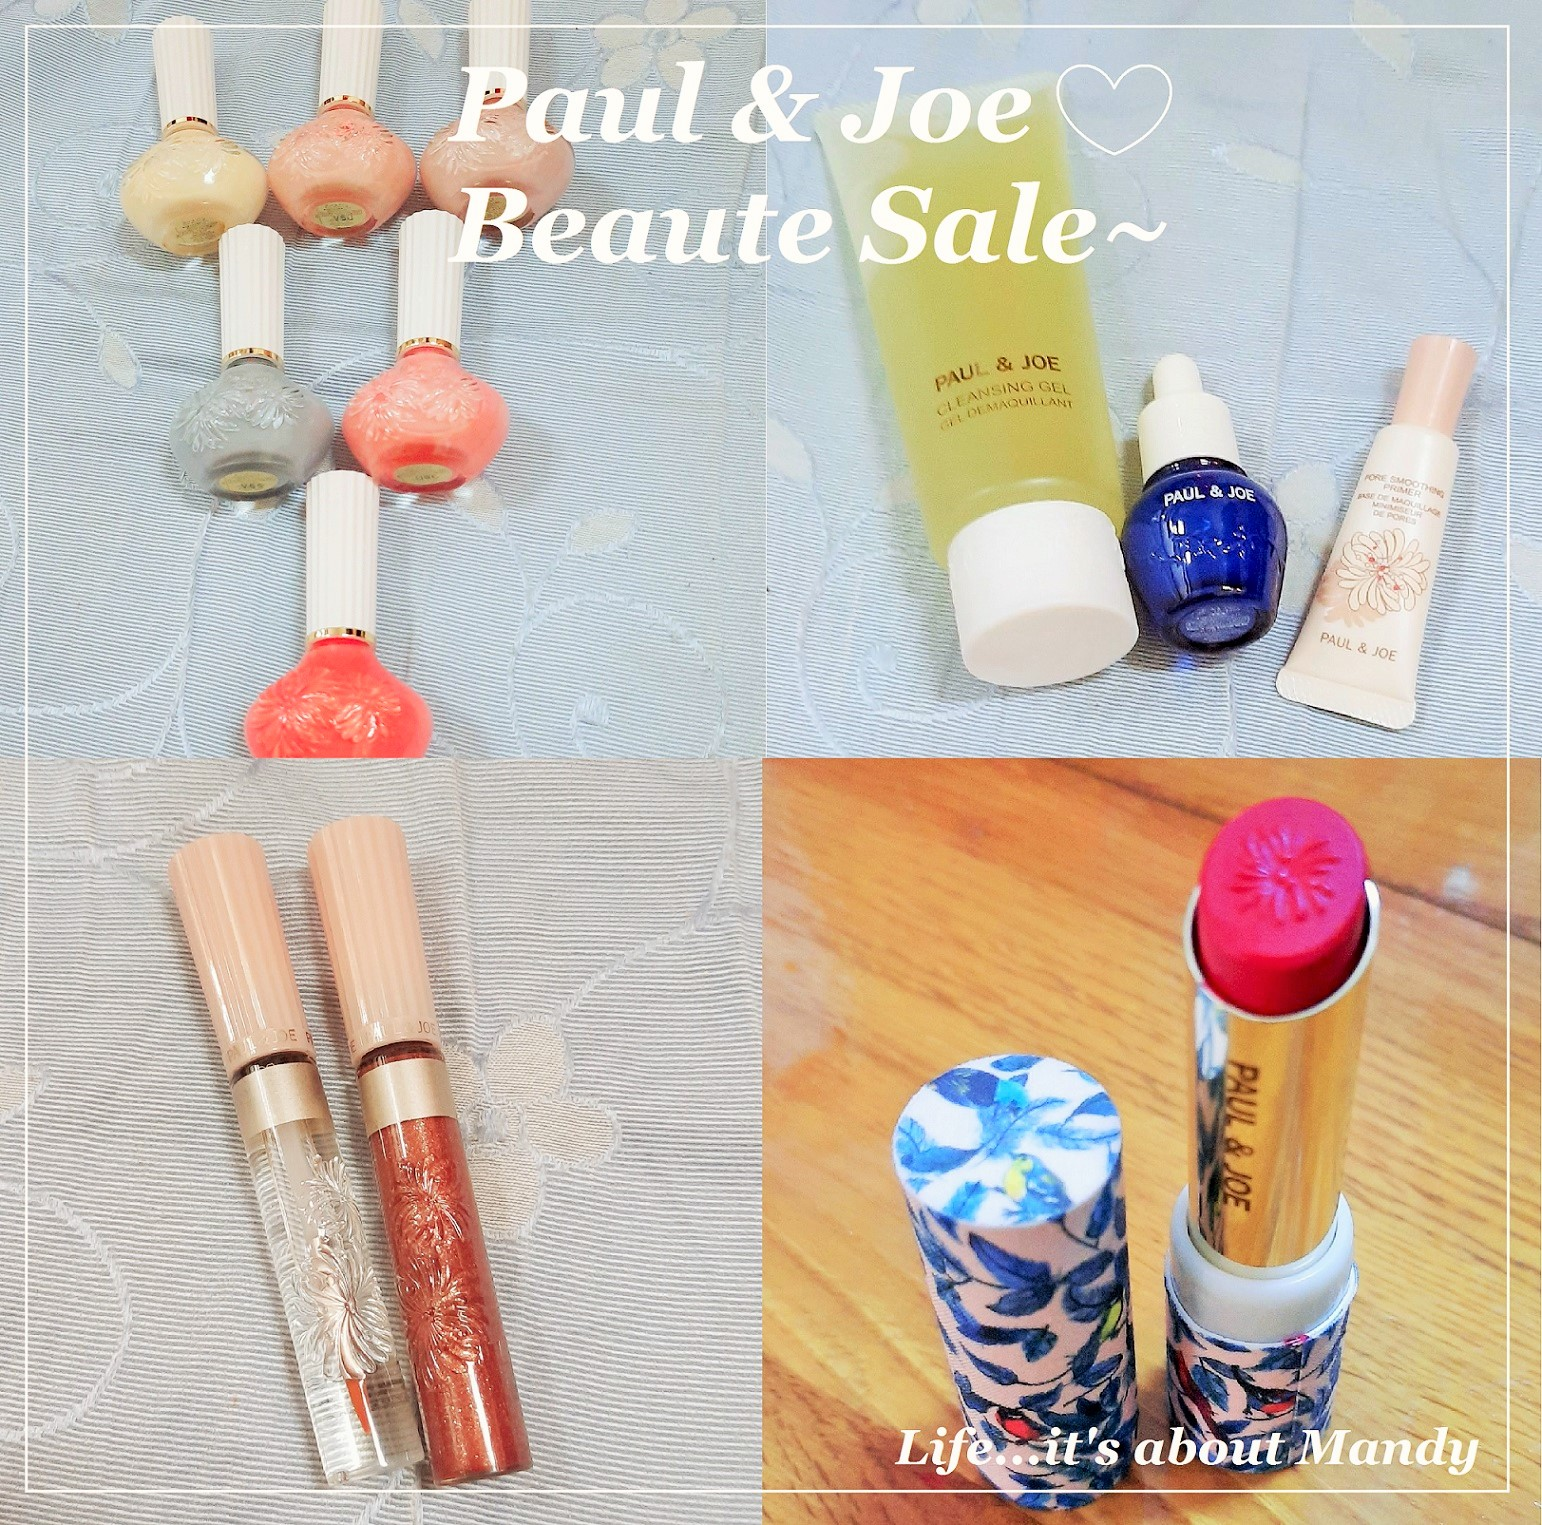 [小資女入手時機] Paul & Joe Beaute Sale~